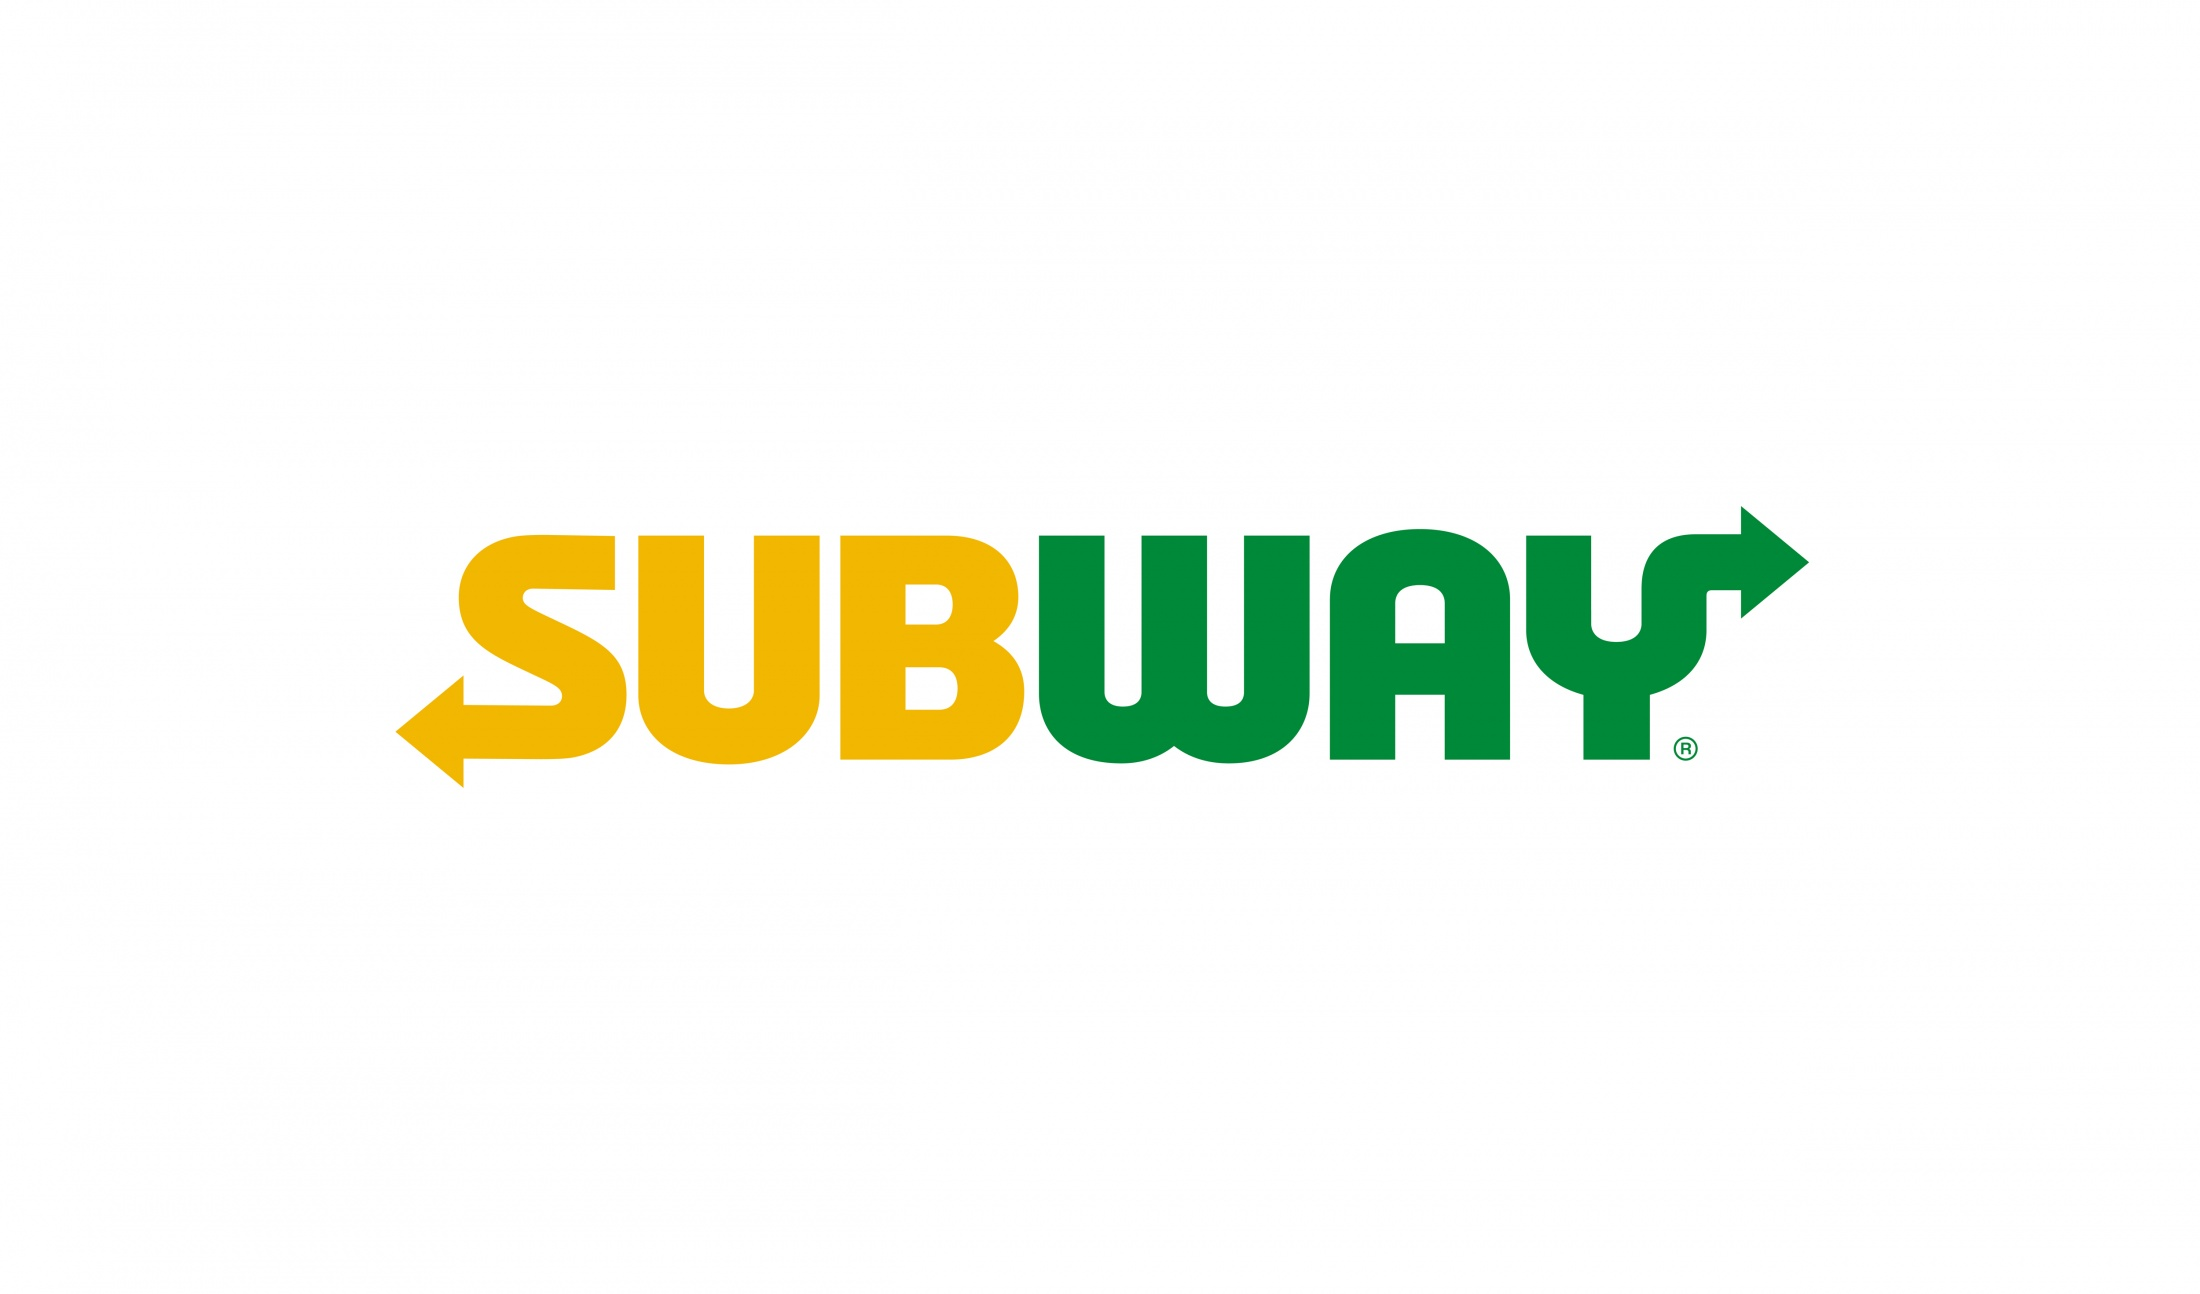 Thumbnail for Subway Logo